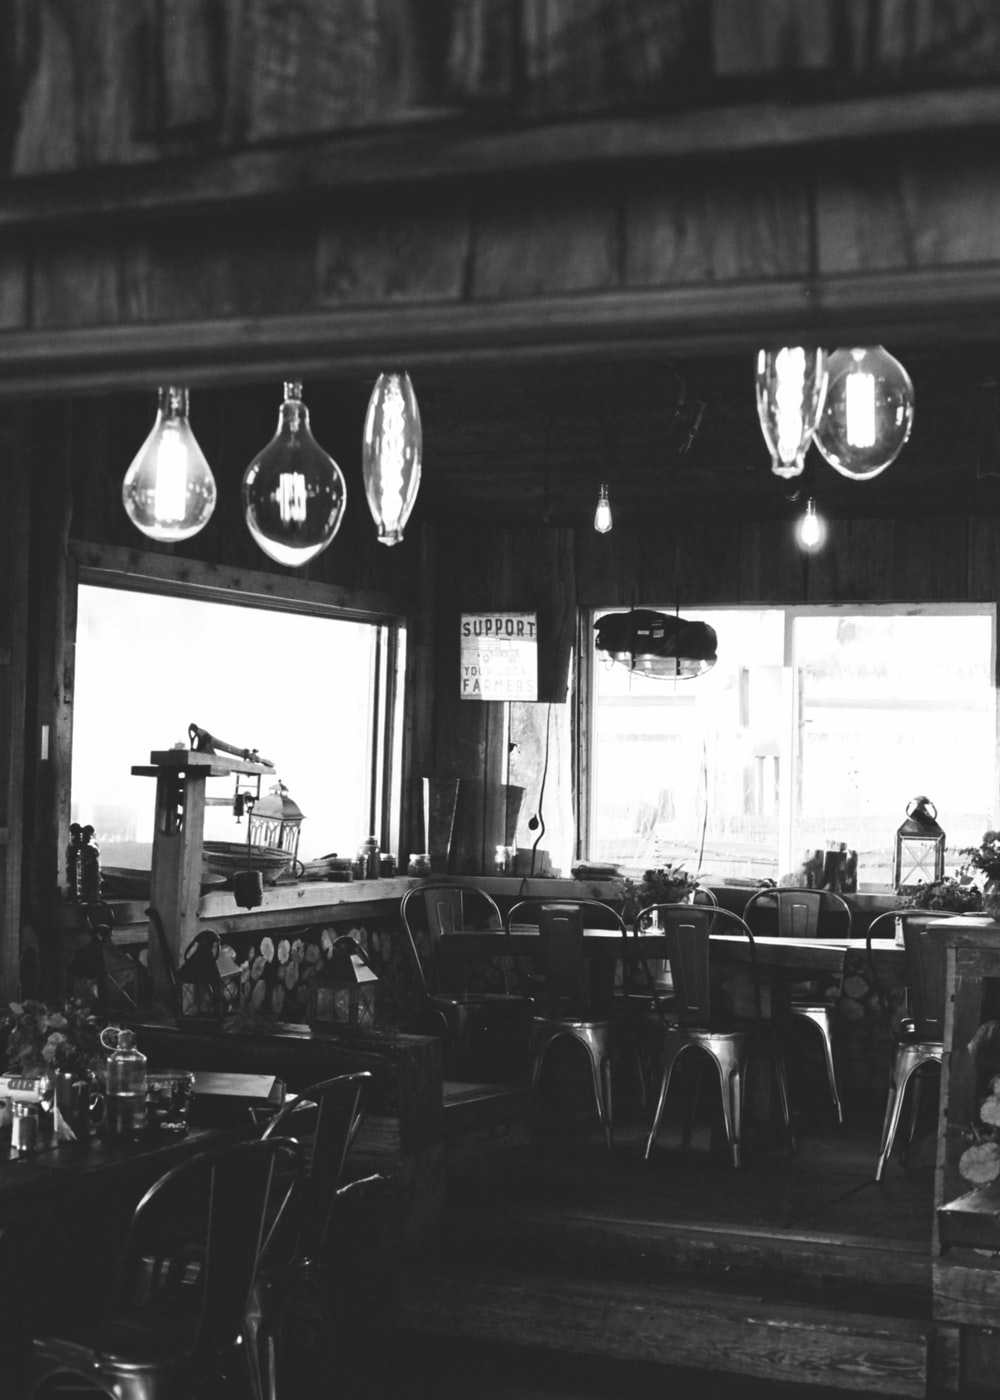 grayscale photo of empty chairs and tables